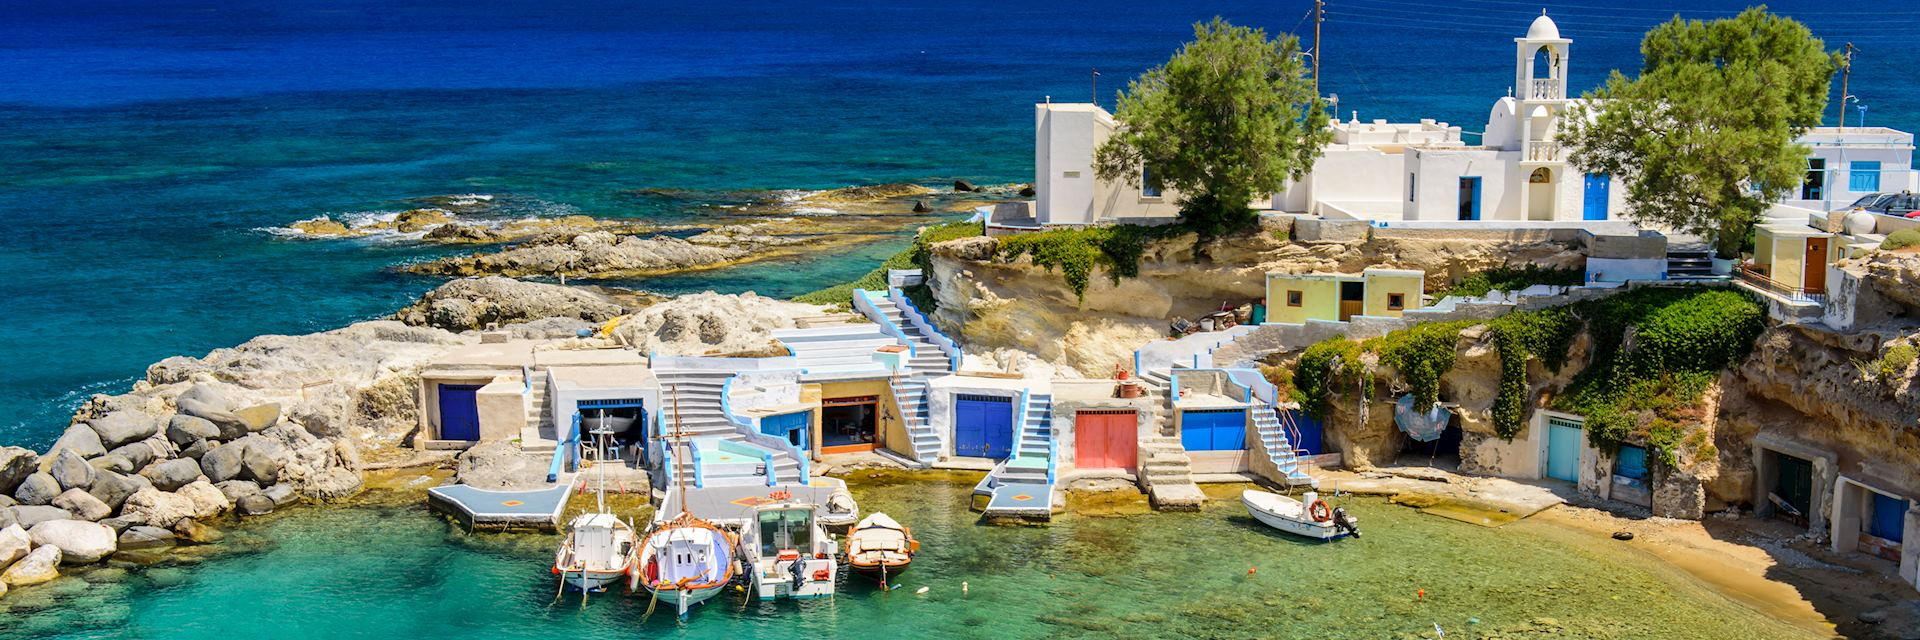 Traditional Greek village by the sea